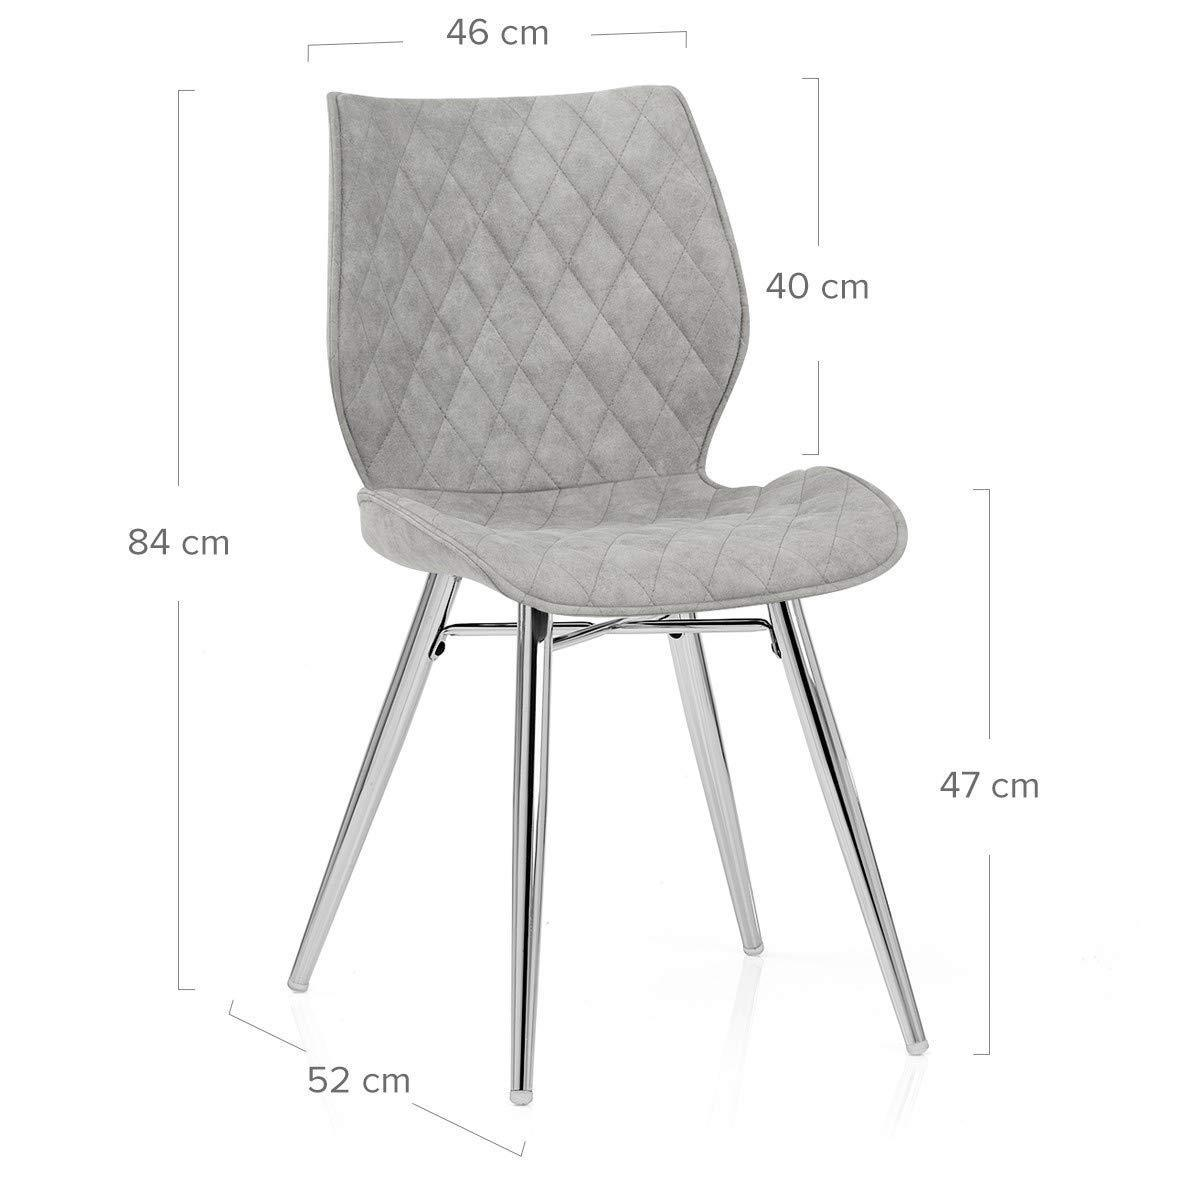 Pale Pearl Grey / Beige Brown Diamond Seam Back Modern Wipe Clean Leather Fabric Dining Chair Silver Chrome Legs - Pebble & Leaf HomeFurniture